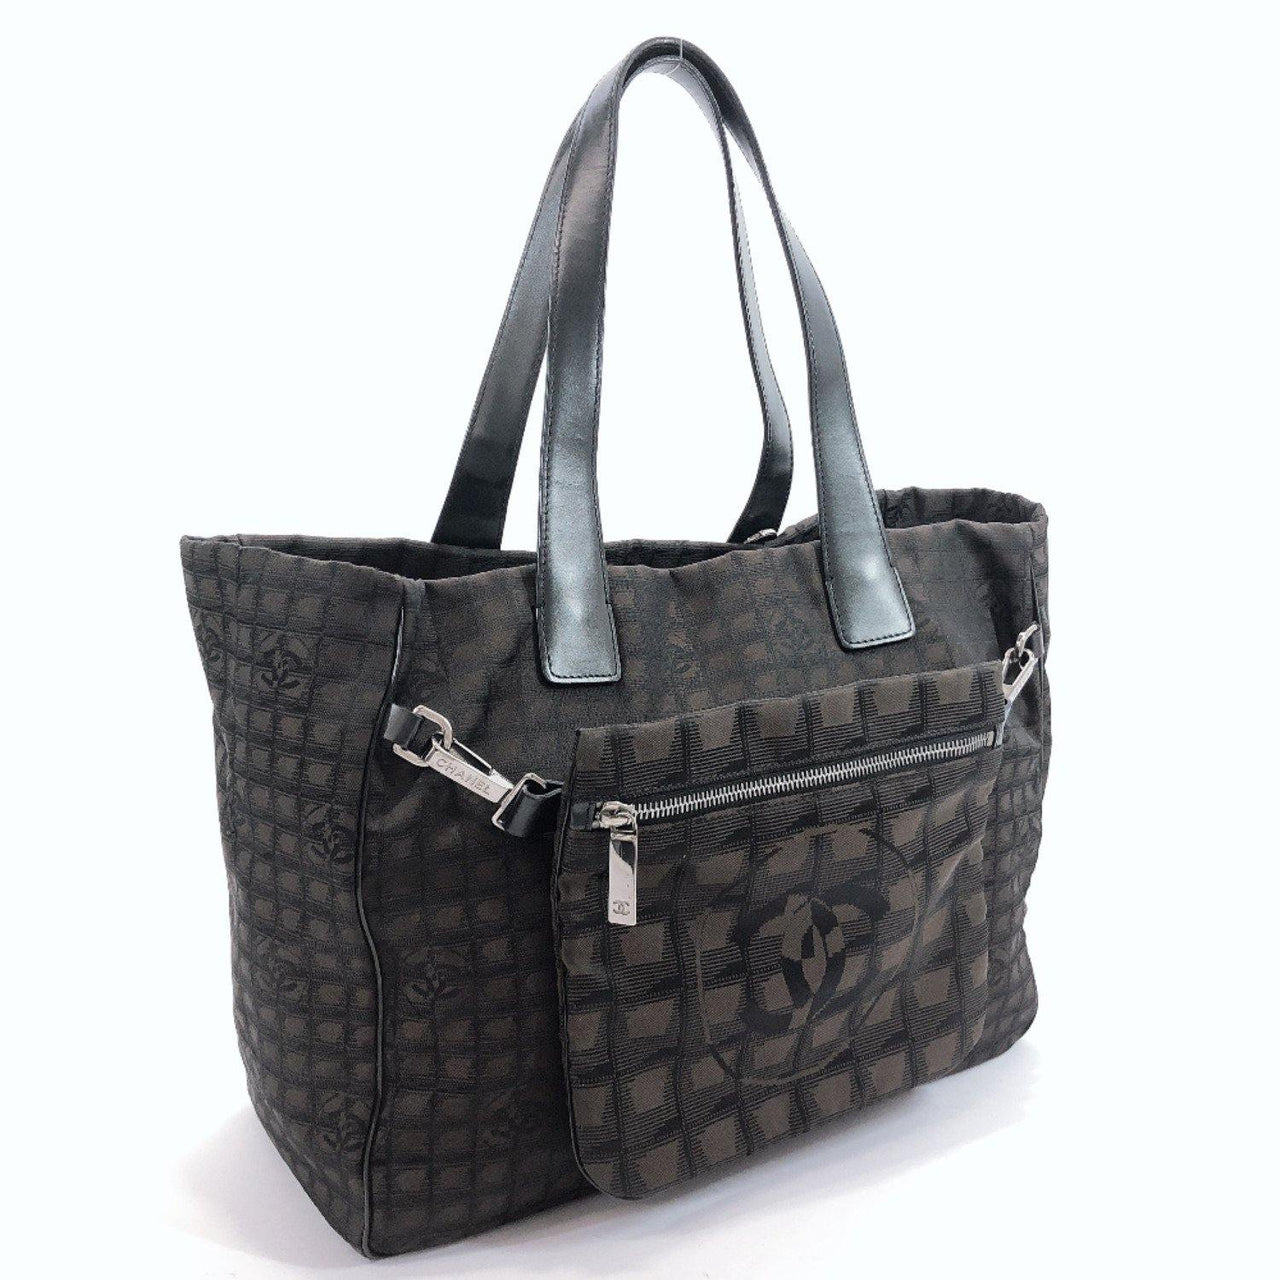 CHANEL Tote Bag New Travel Line MM Nylon Brown Women Used - JP-BRANDS.com